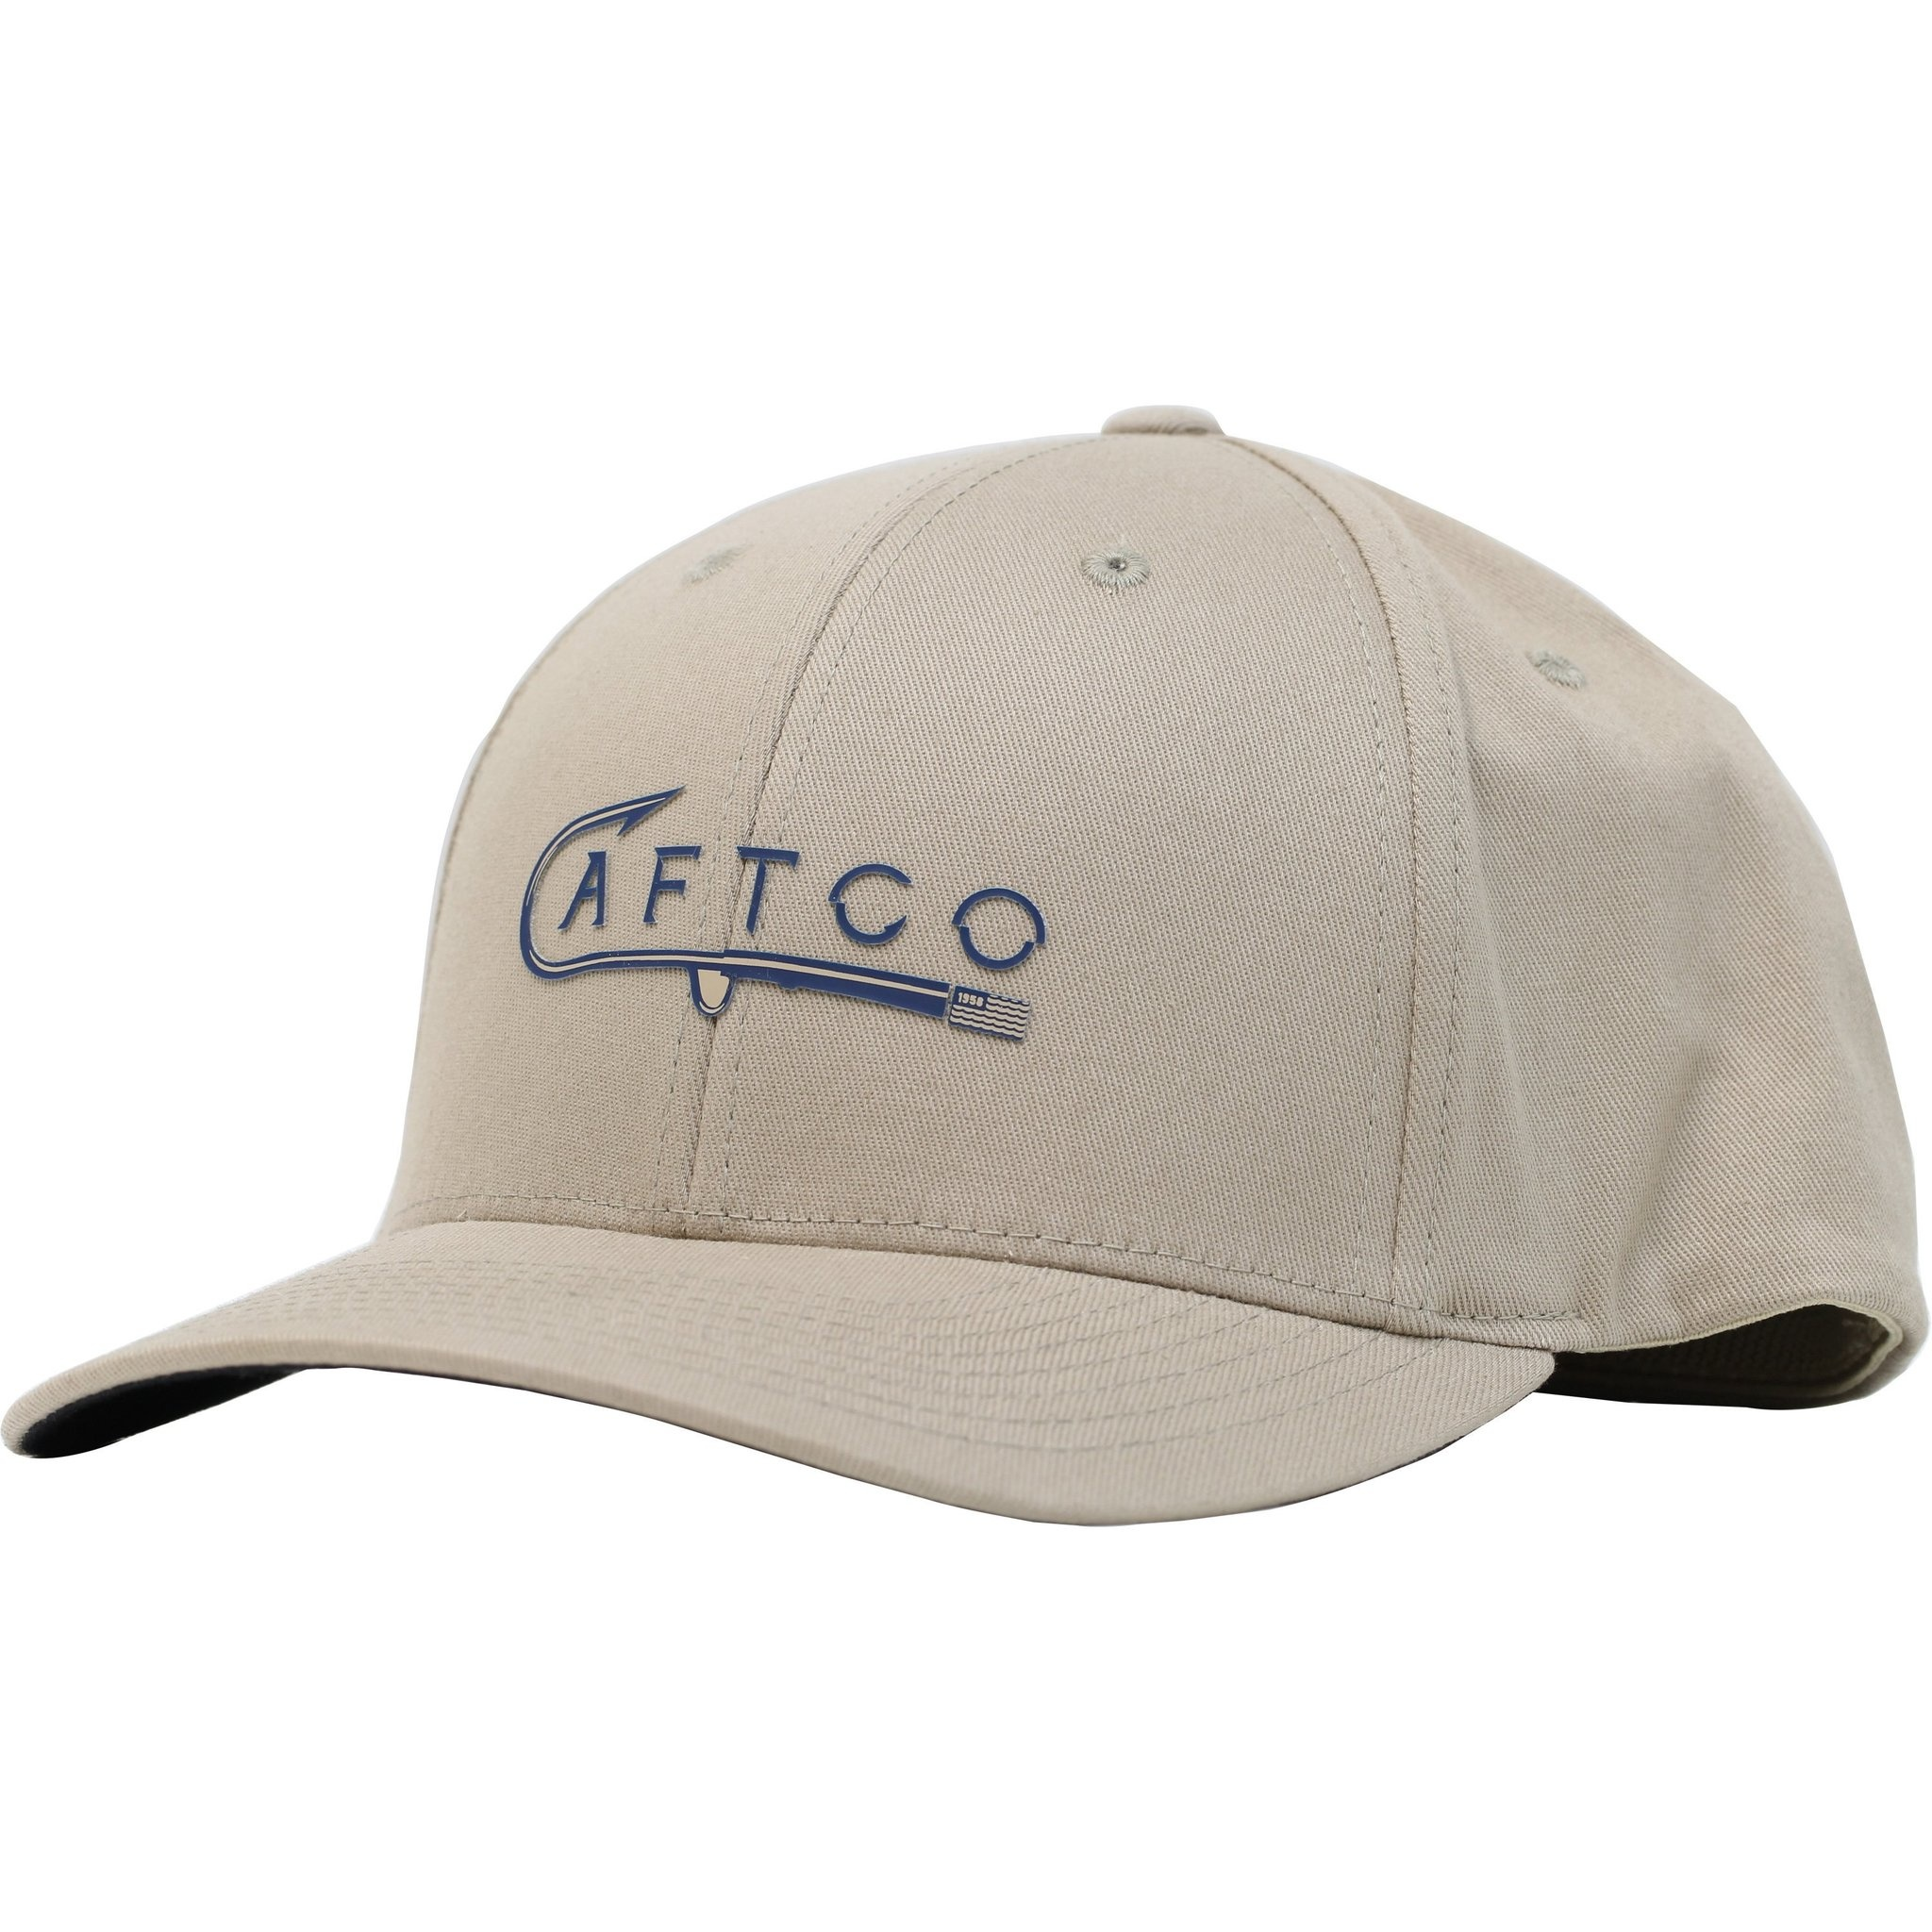 AFTCO AFTCO BIG J FLEXFIT HAT